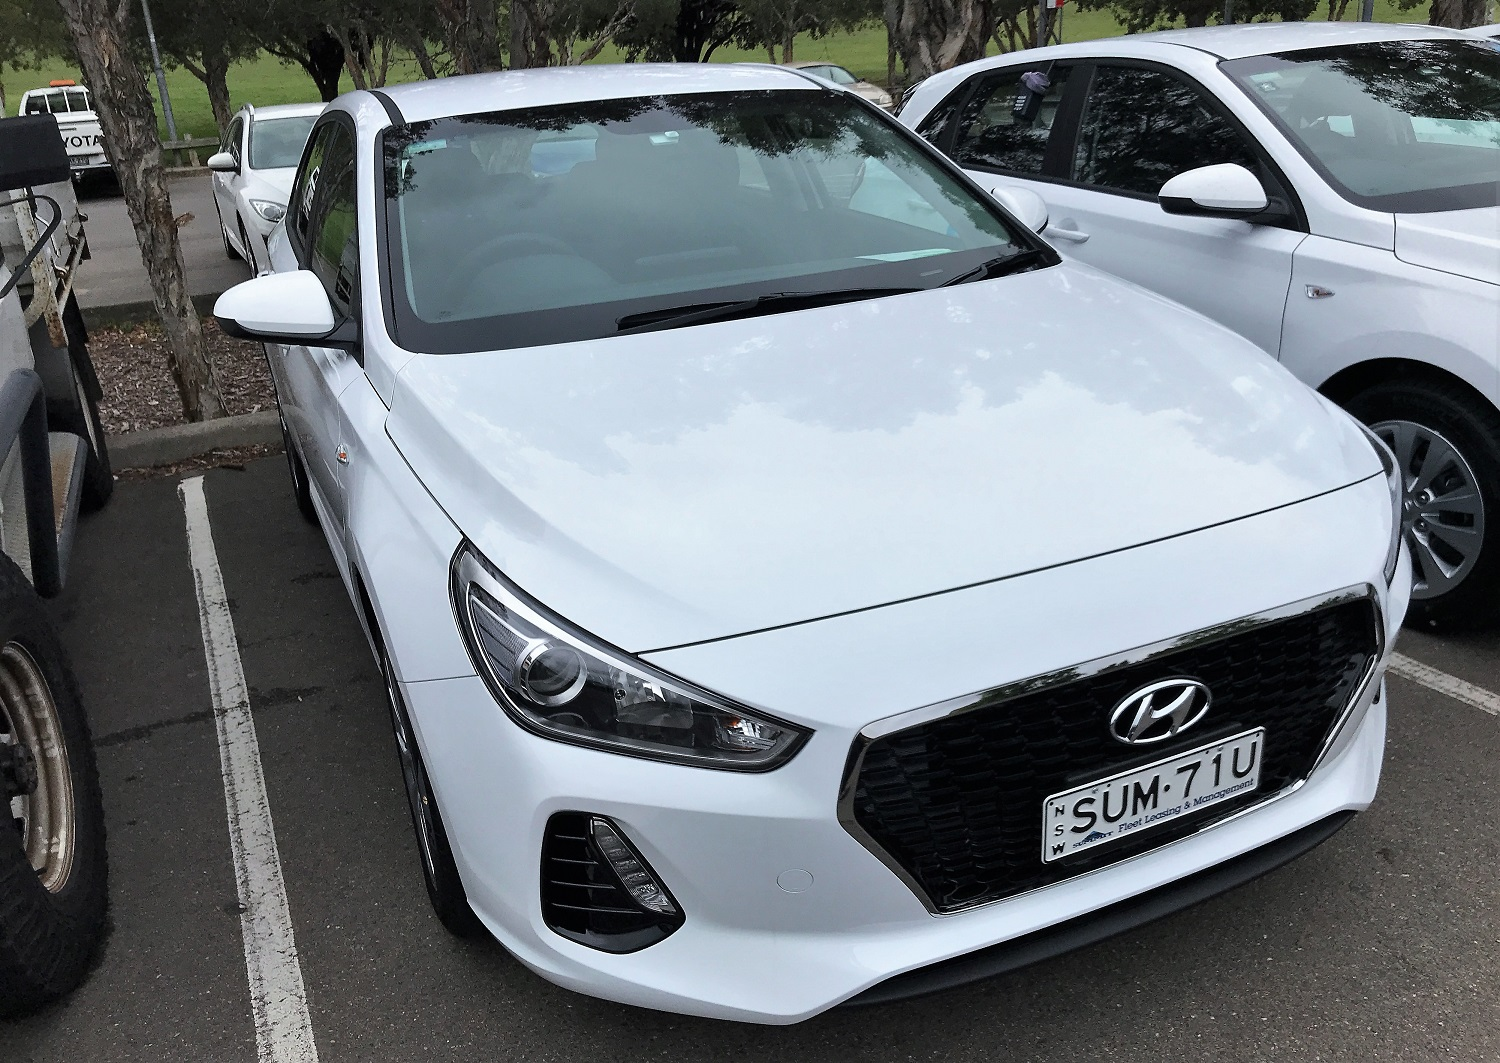 Picture of CarNextDoor's 2018 Hyundai i30